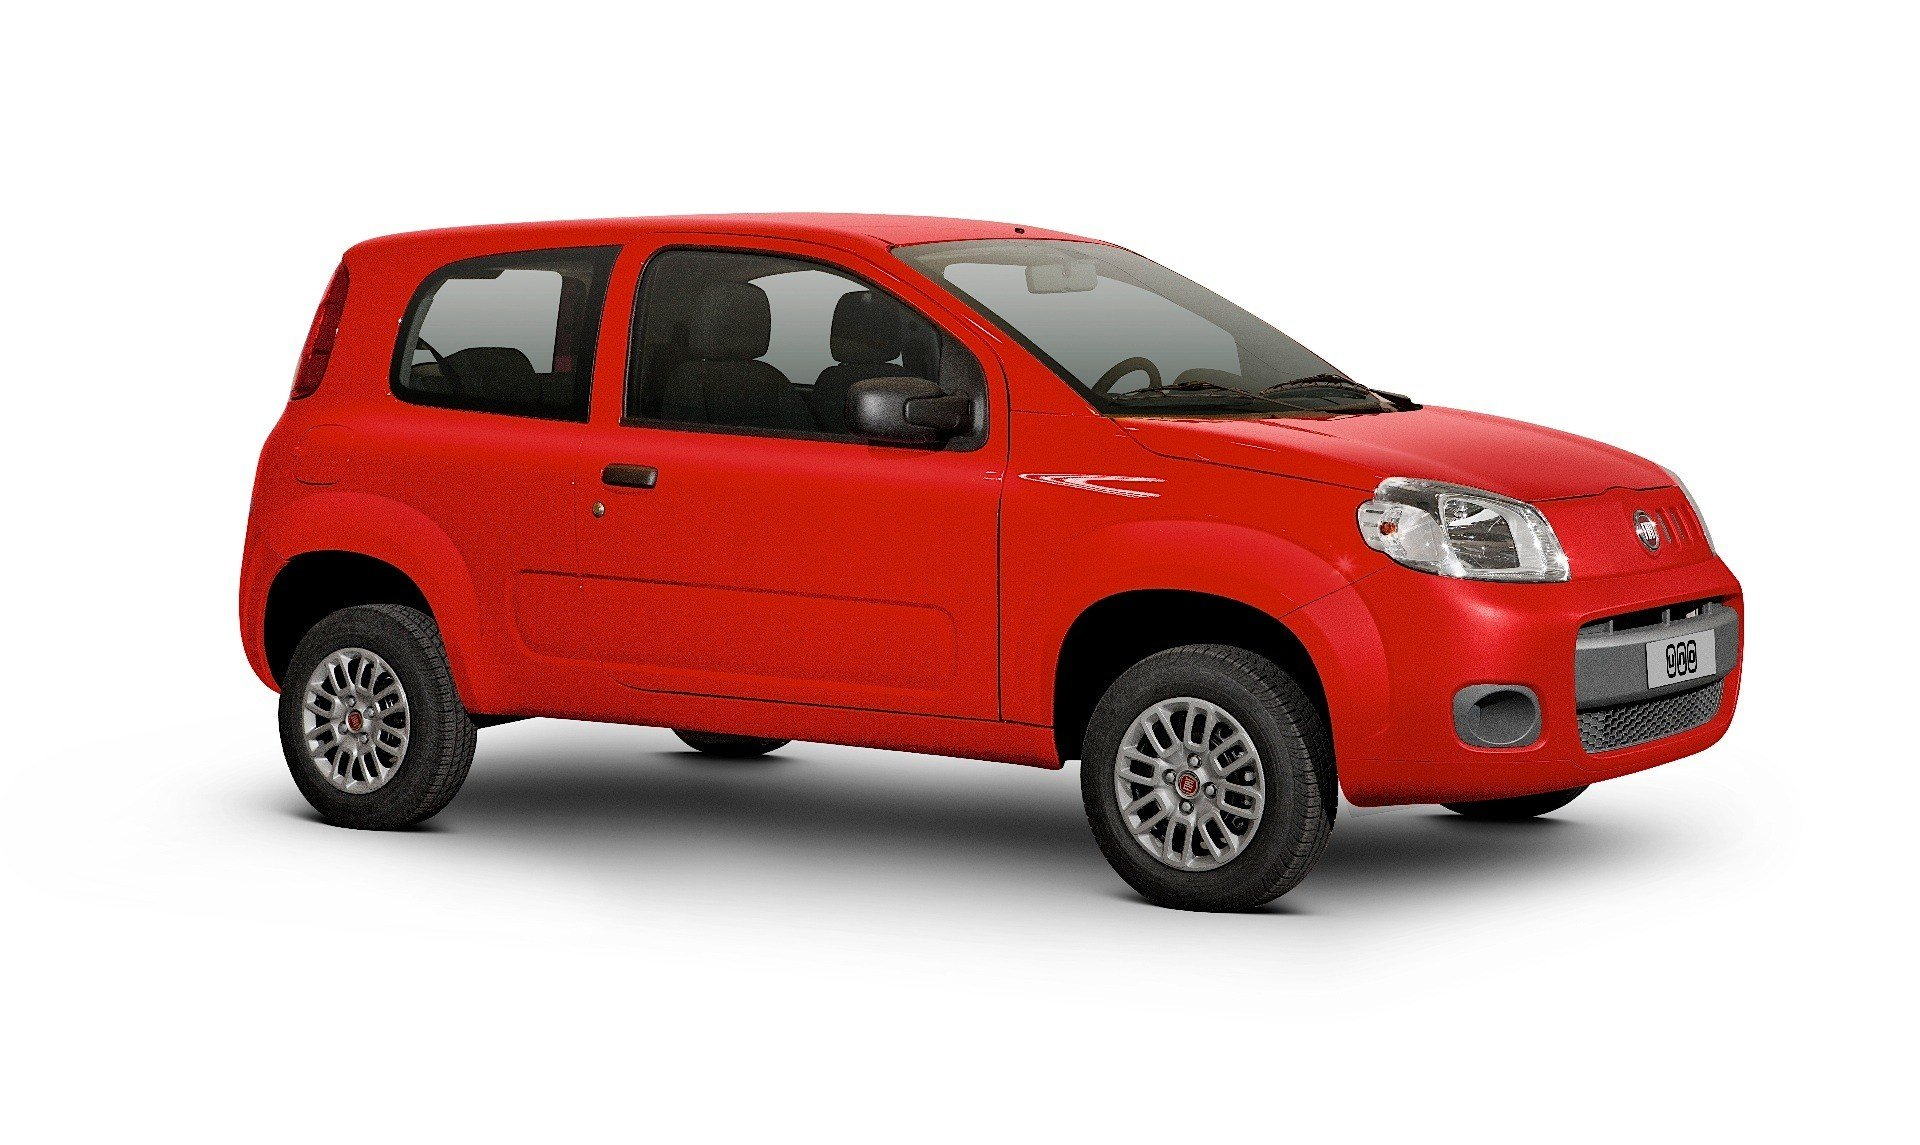 New Fiat Uno 2010 2011 2012 2013 2014 2015 2016 On This Month